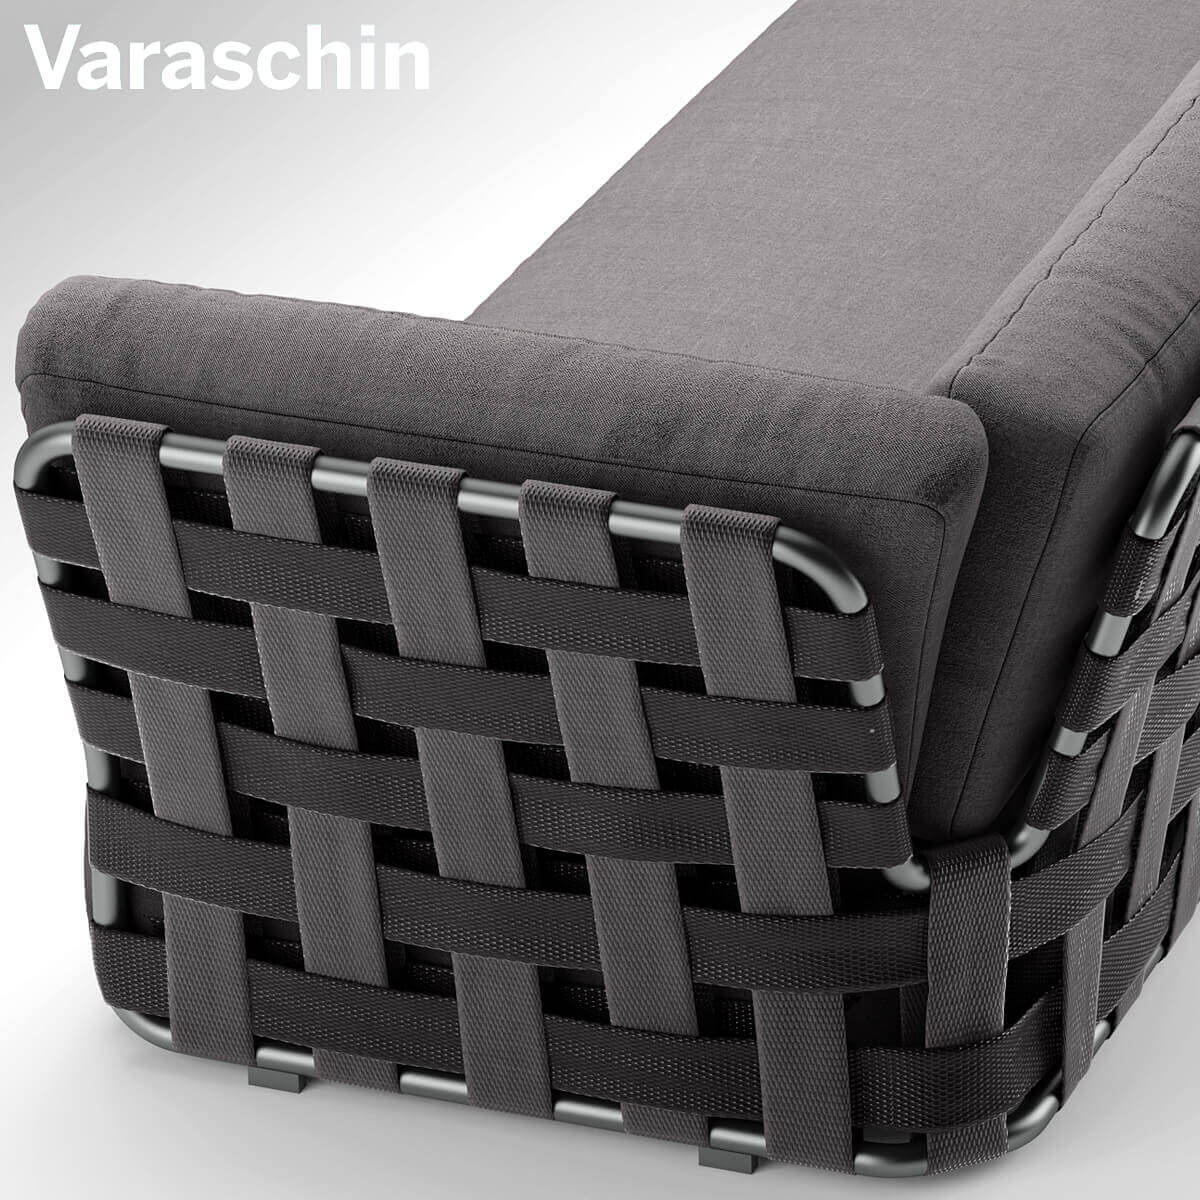 Chair Varaschin Victor Sofa 3D Model Outdoor Furniture 4